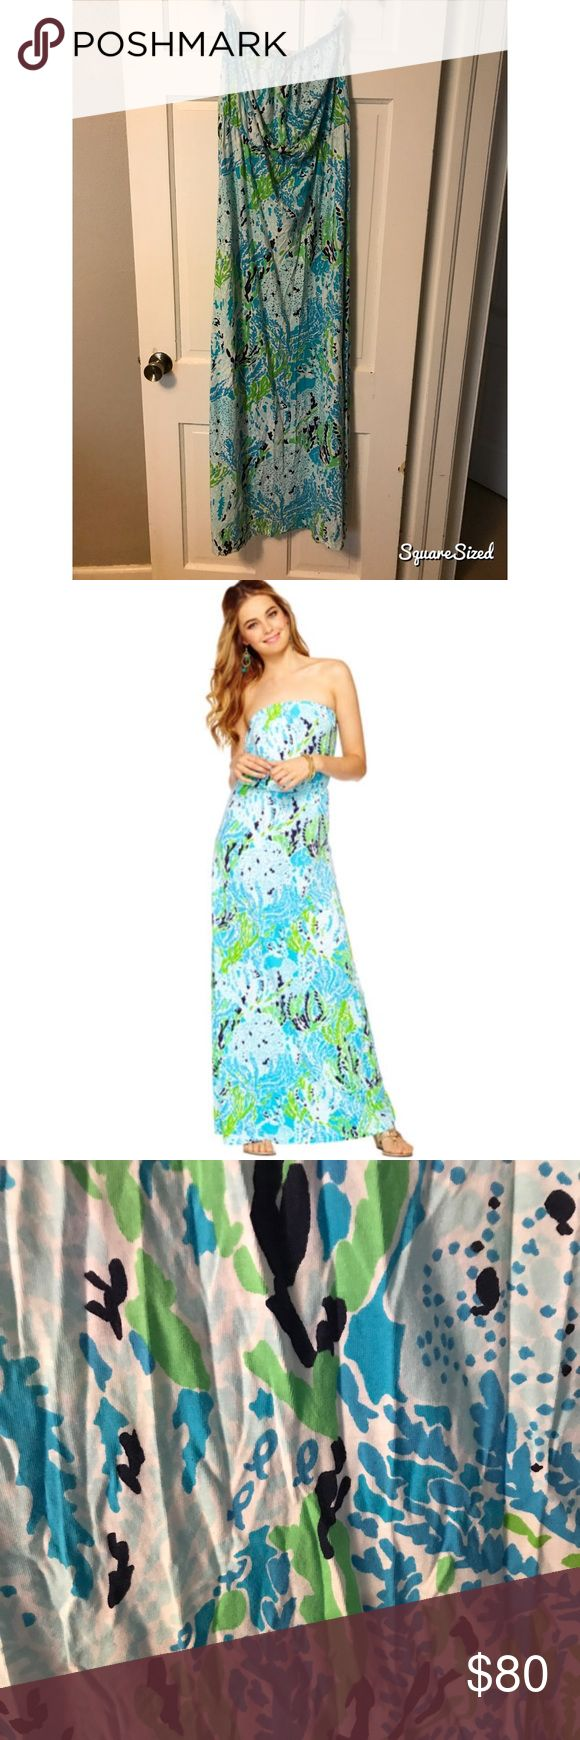 MARLISA STRAPLESS MAXI DRESS Lilly Pulitzer Daytime maxi dresses are a summer staple. This elastic waistband dress flatters your figure while covering you in lux fabric. You'll want the Marlisa in every print and pattern. Printed Strapless Maxi Dress With Elastic Waist. Pima Cotton Jersey - (100% Cotton). Machine Wash Cold, Inside Out.  Style #: 83839 Lilly Pulitzer Dresses Maxi